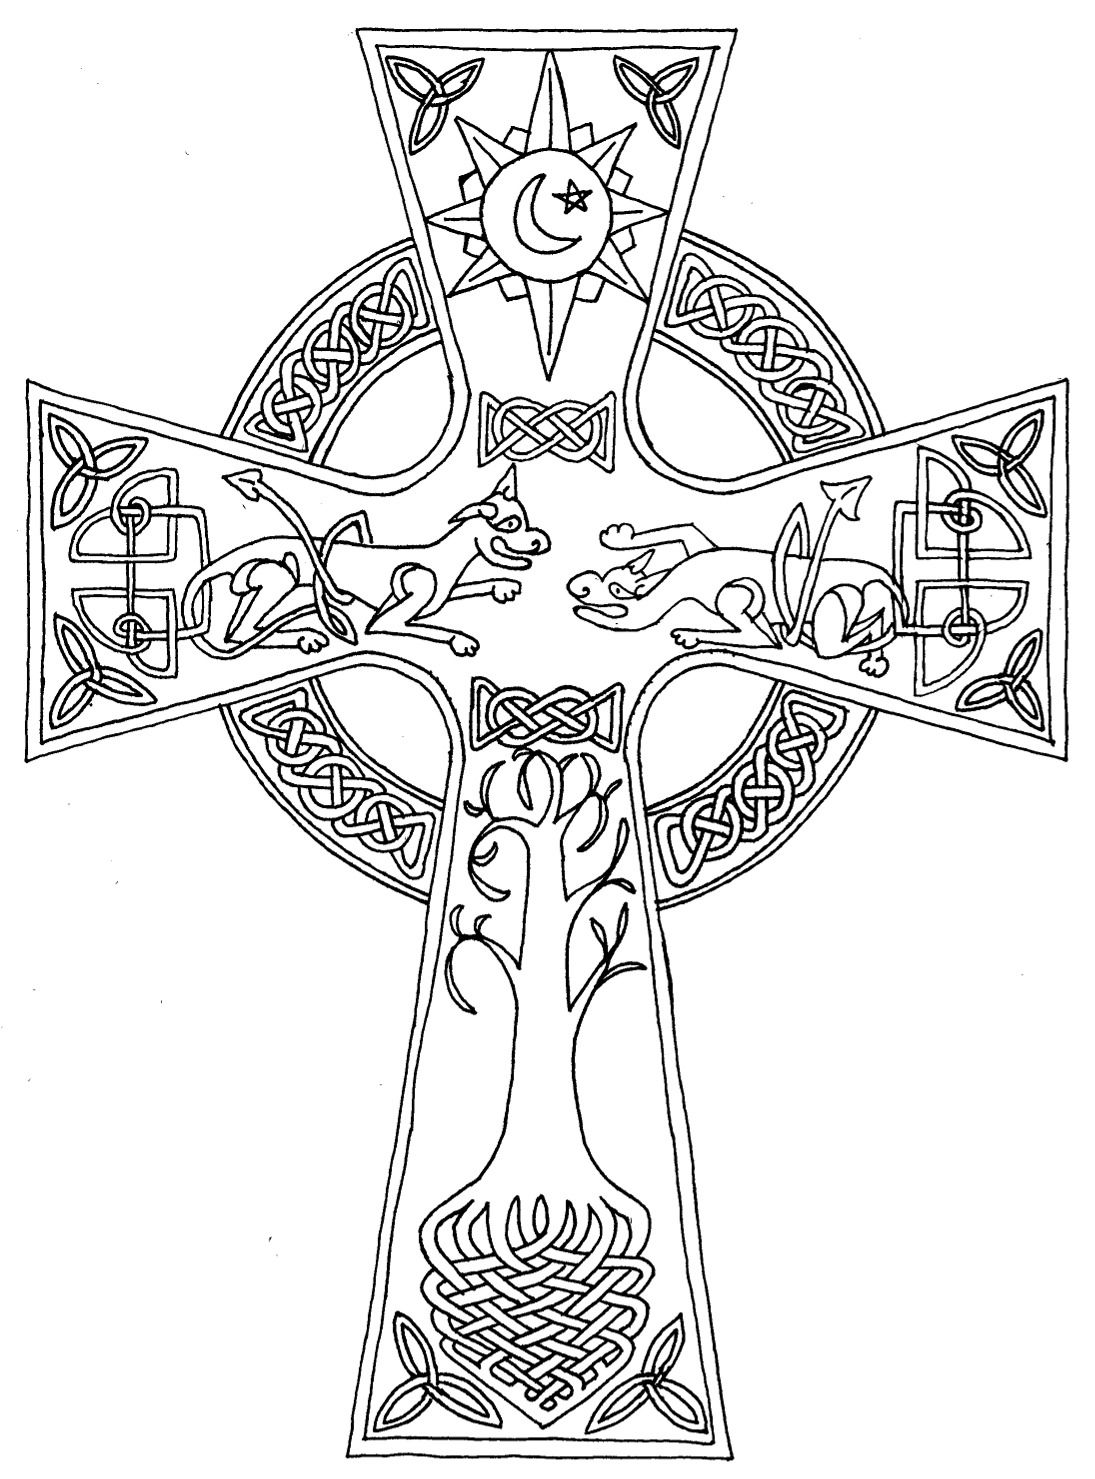 coloring pages crosses - photo#16